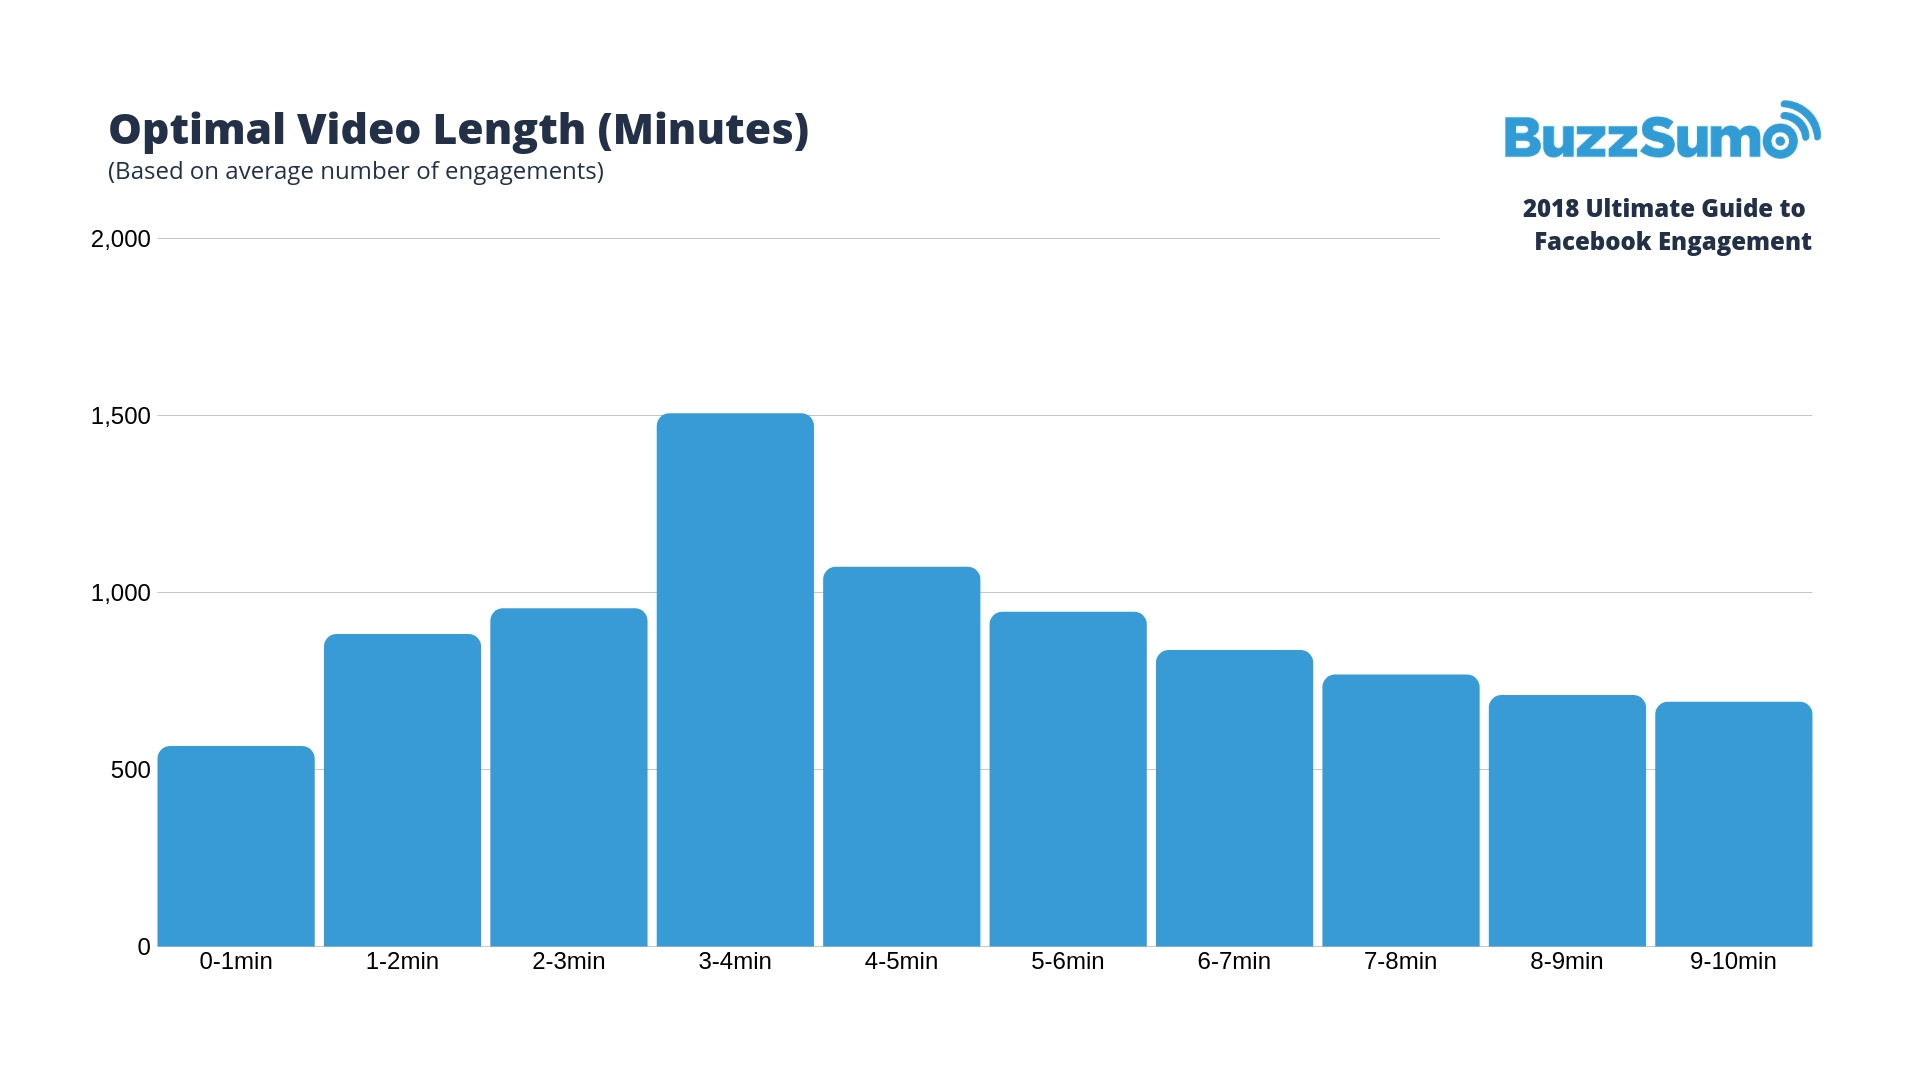 optimal video length for facebook engagement